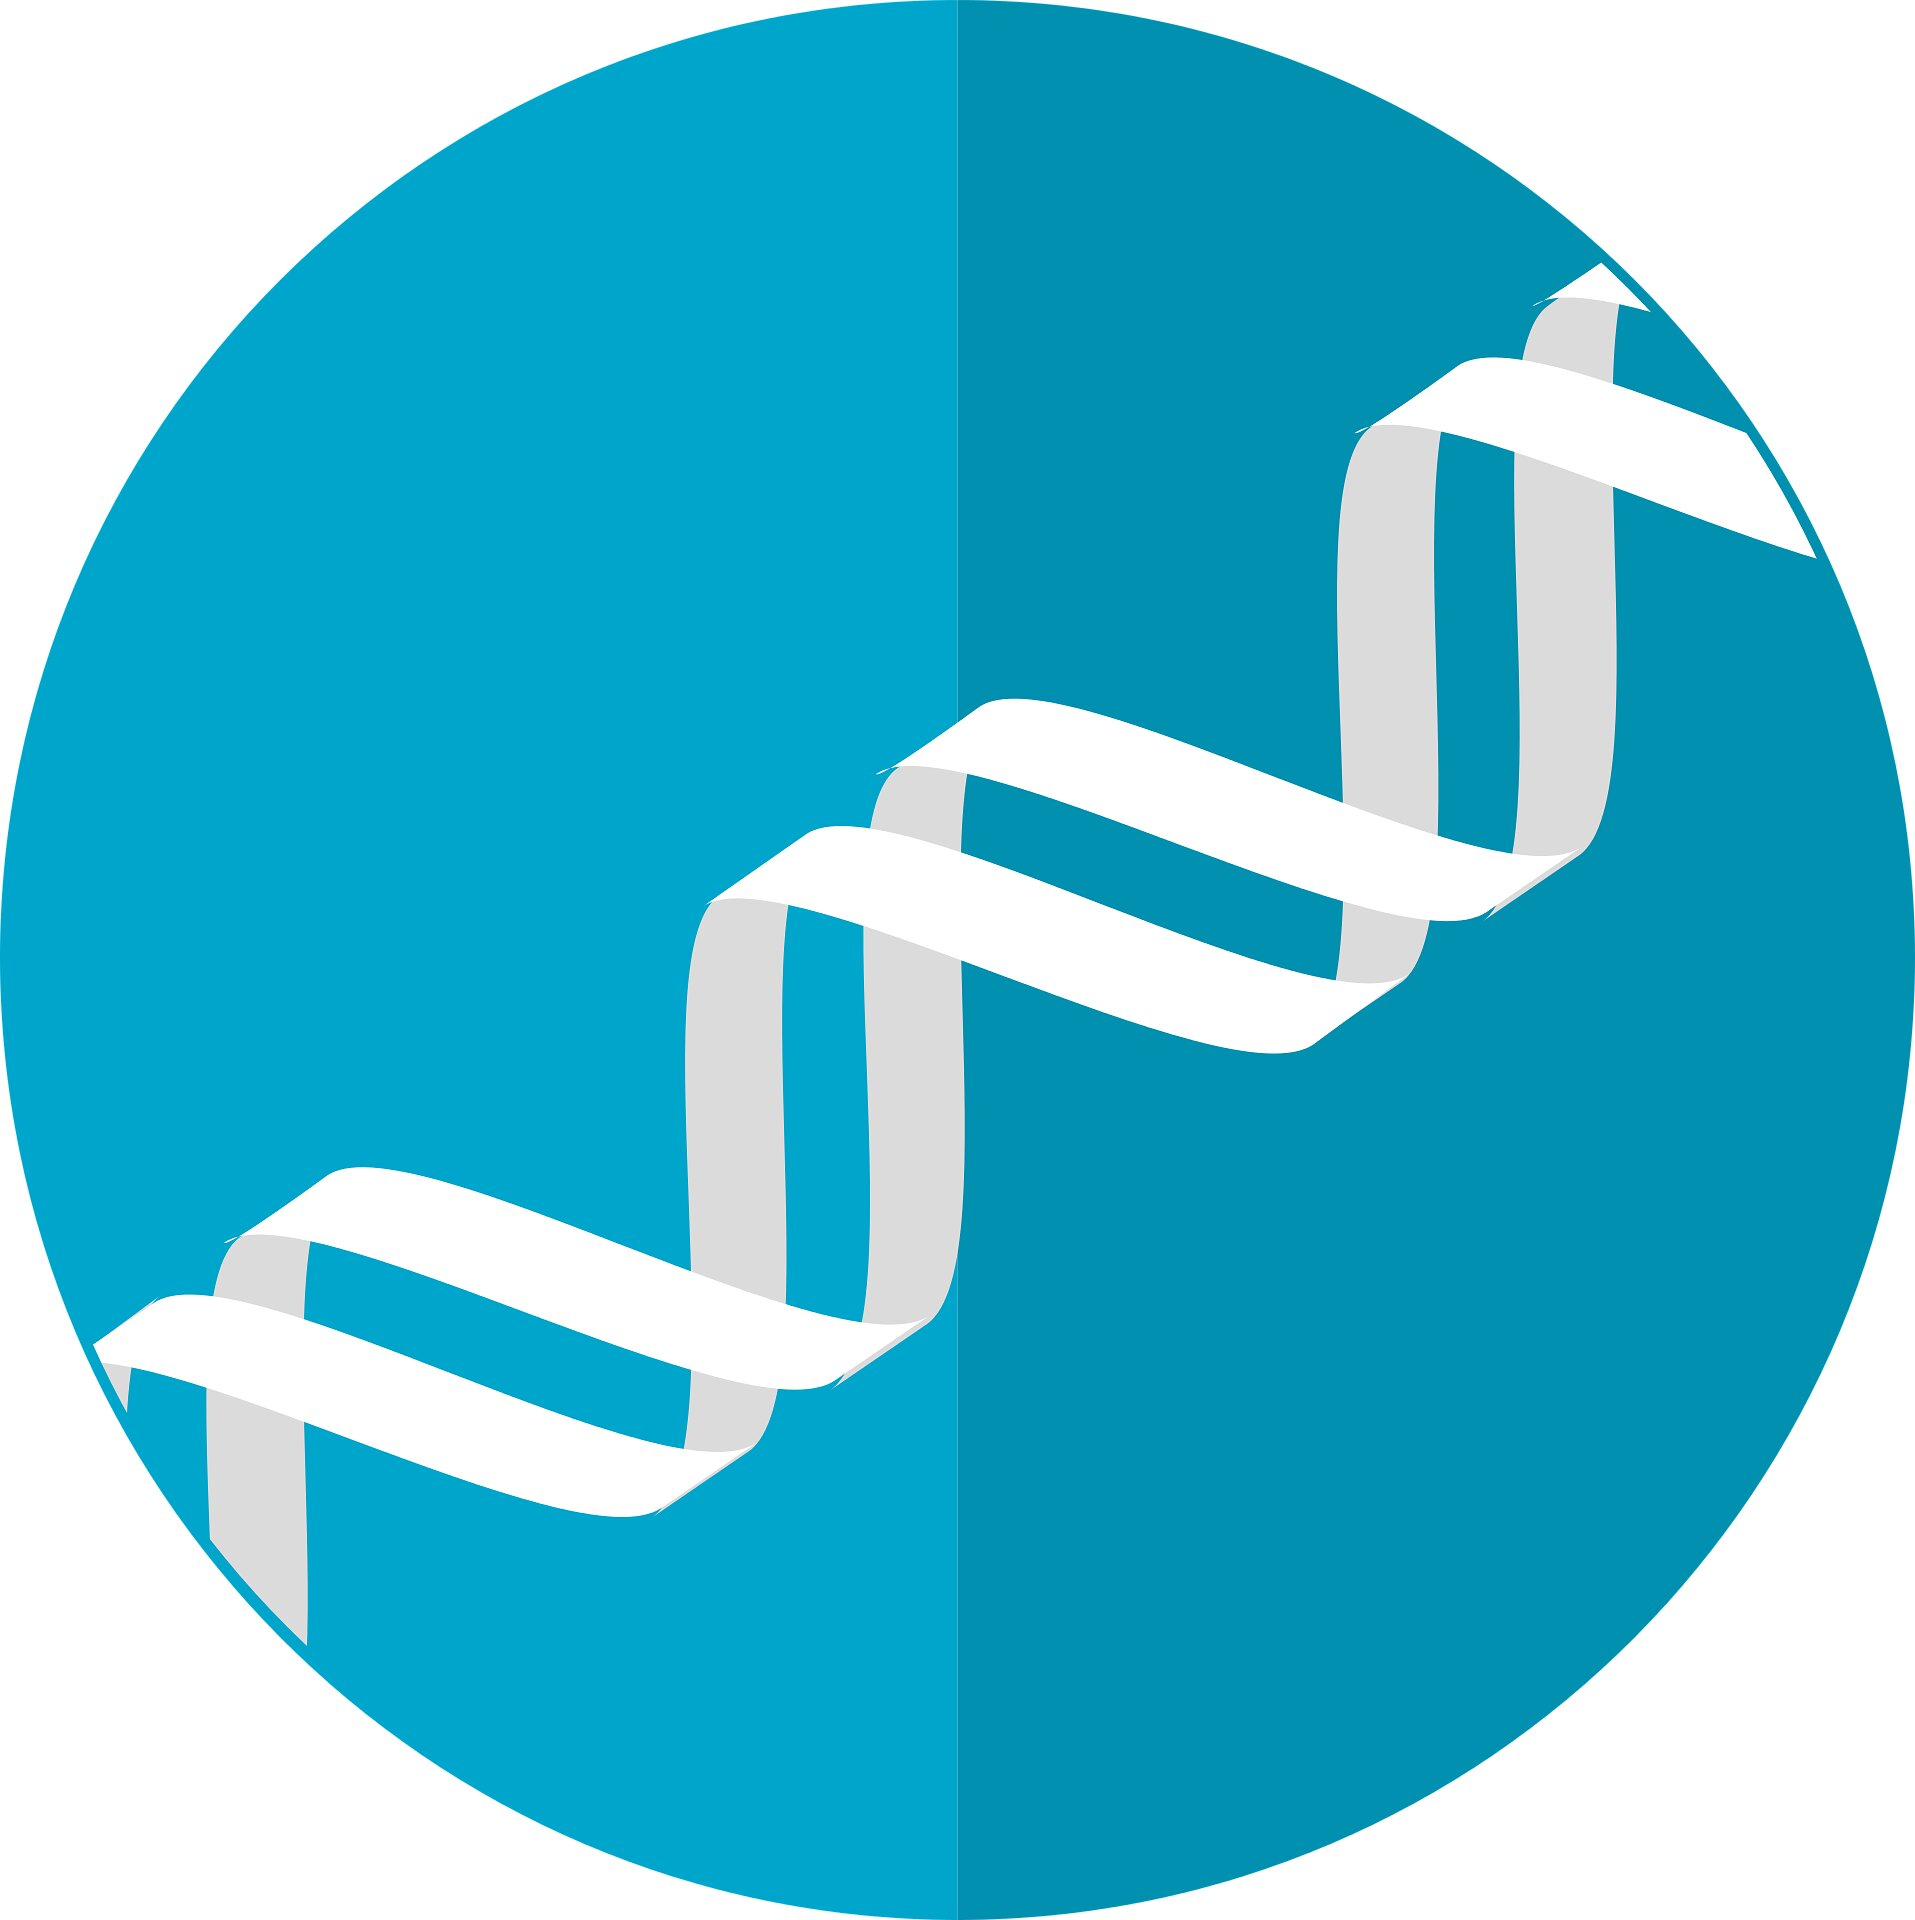 Understudied mutations have big impact on gene expression